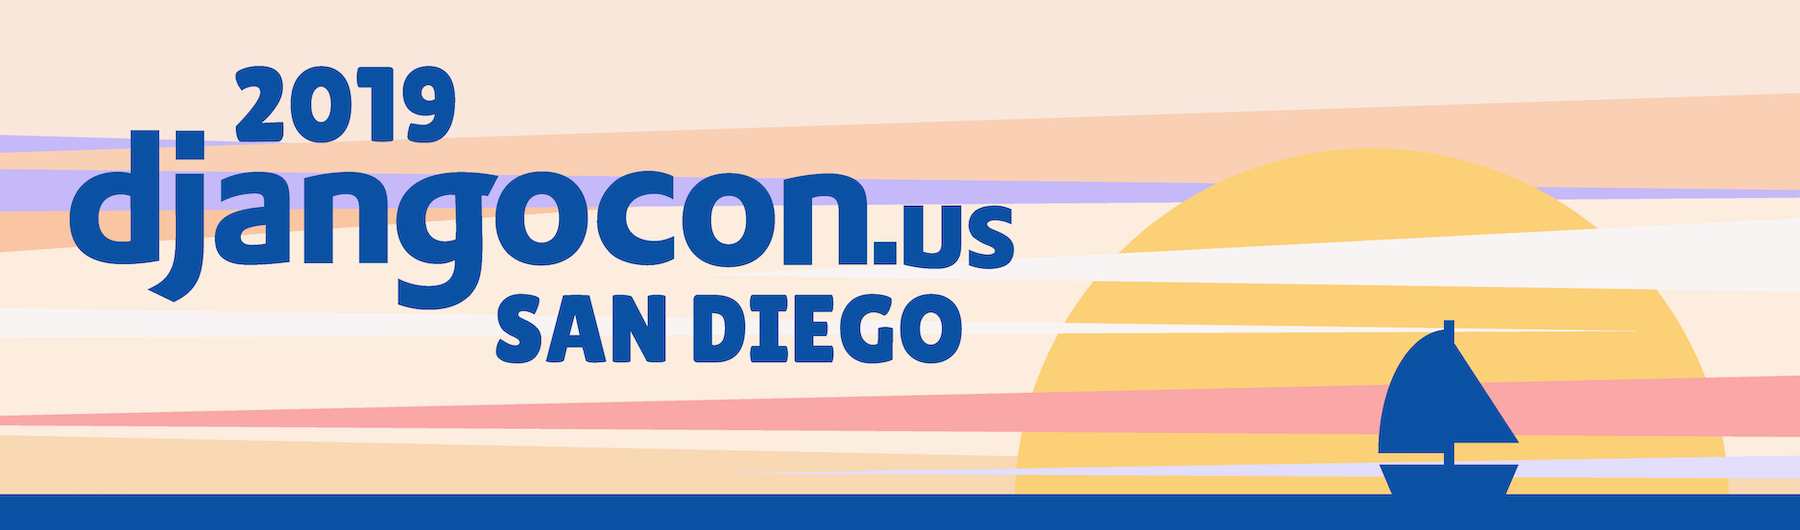 DjangoCon US 2019